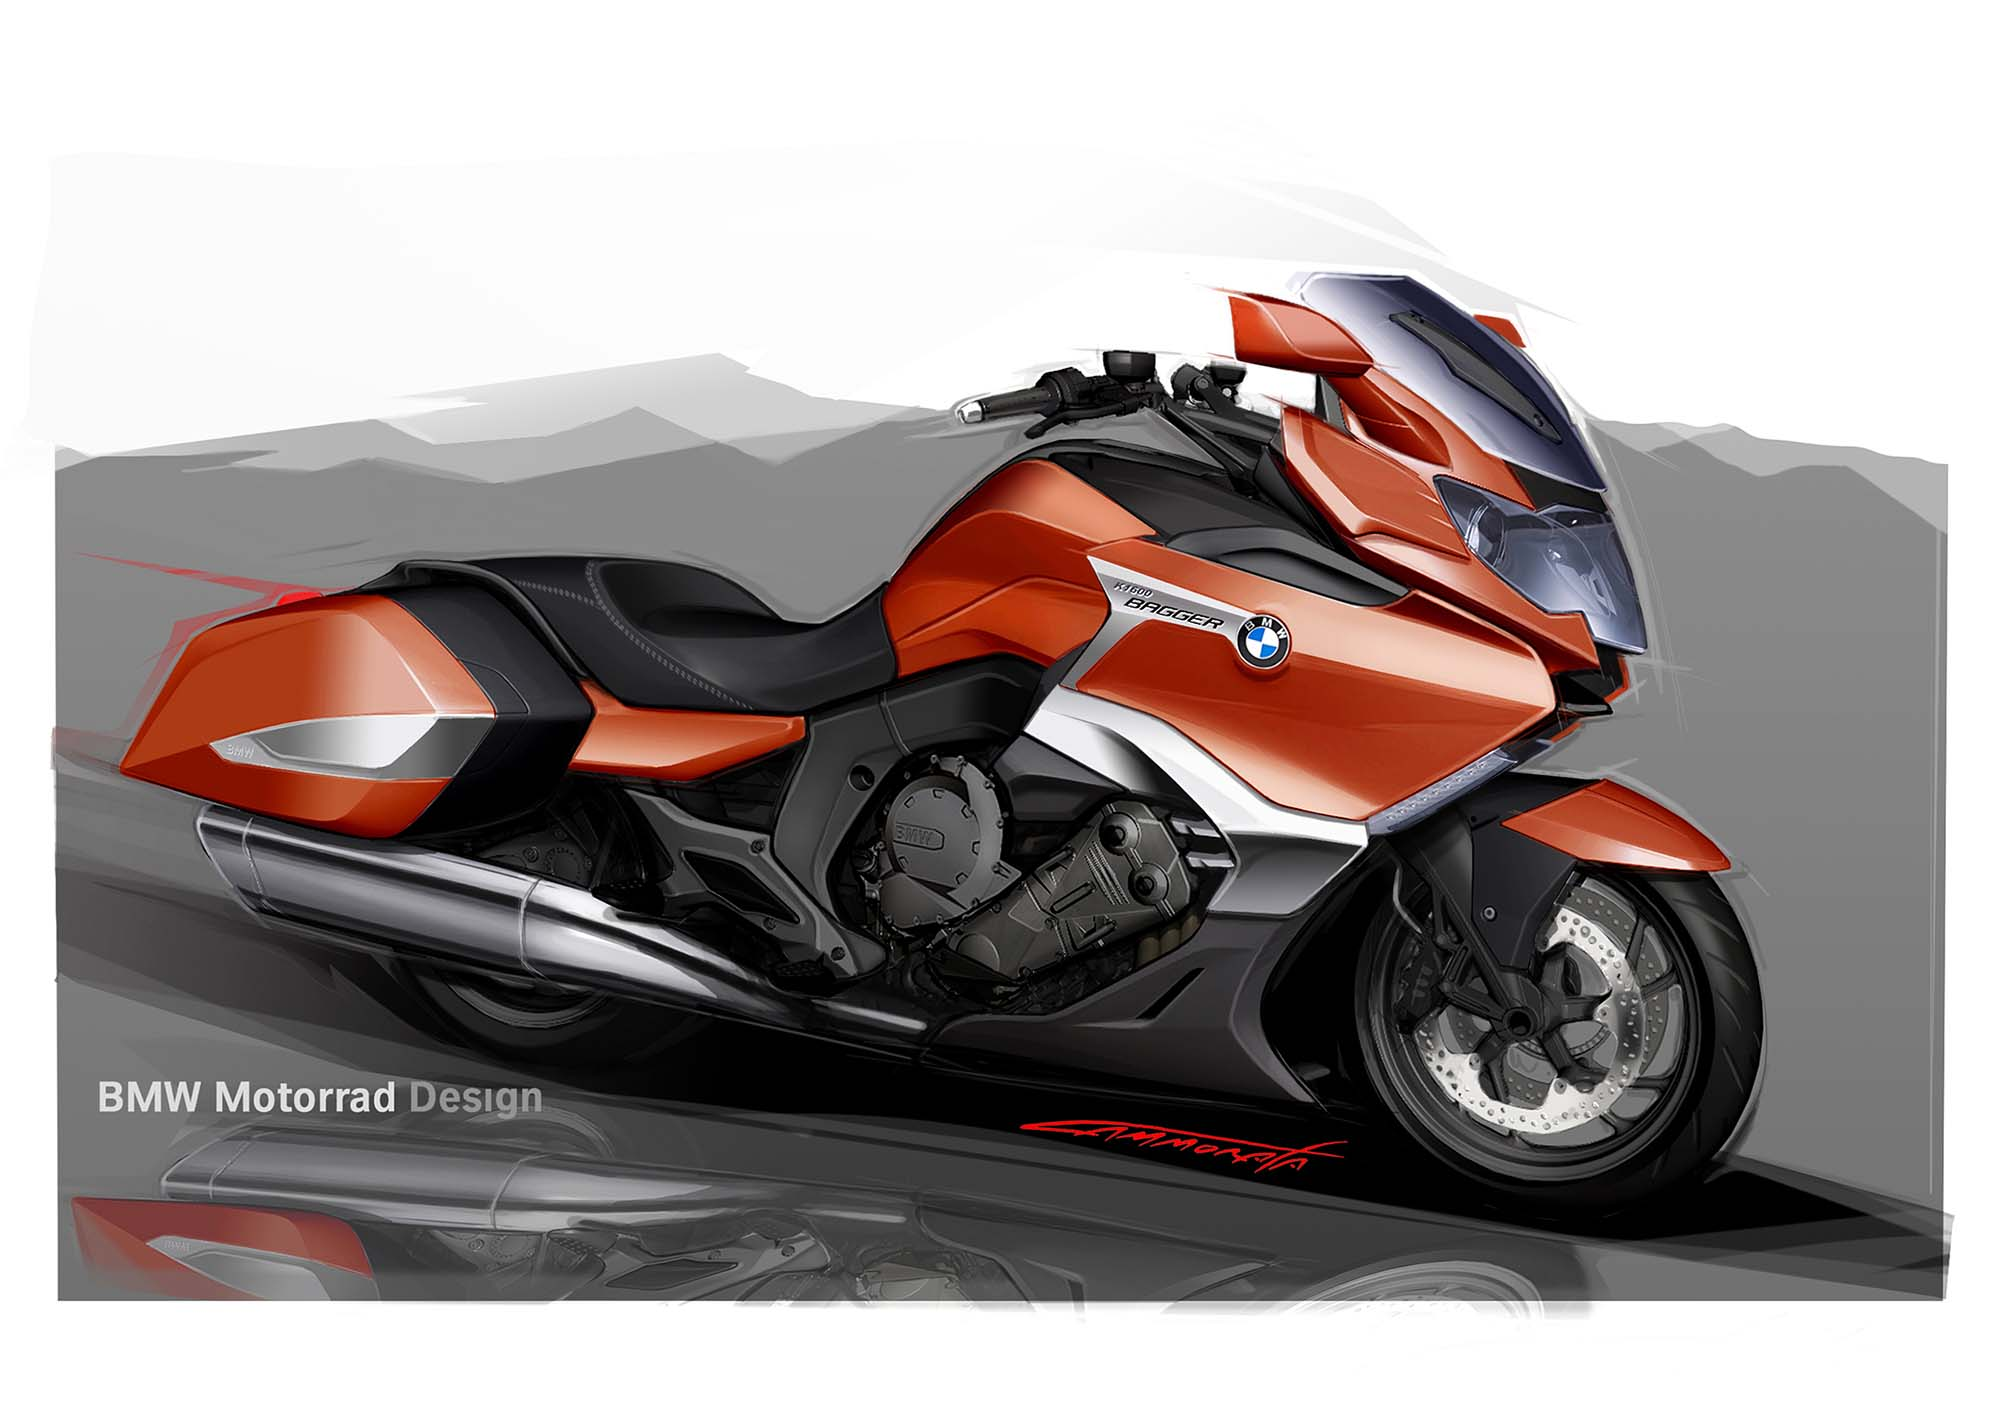 2018 Bmw K 1600 B - New Car Release Date and Review 2018 ...